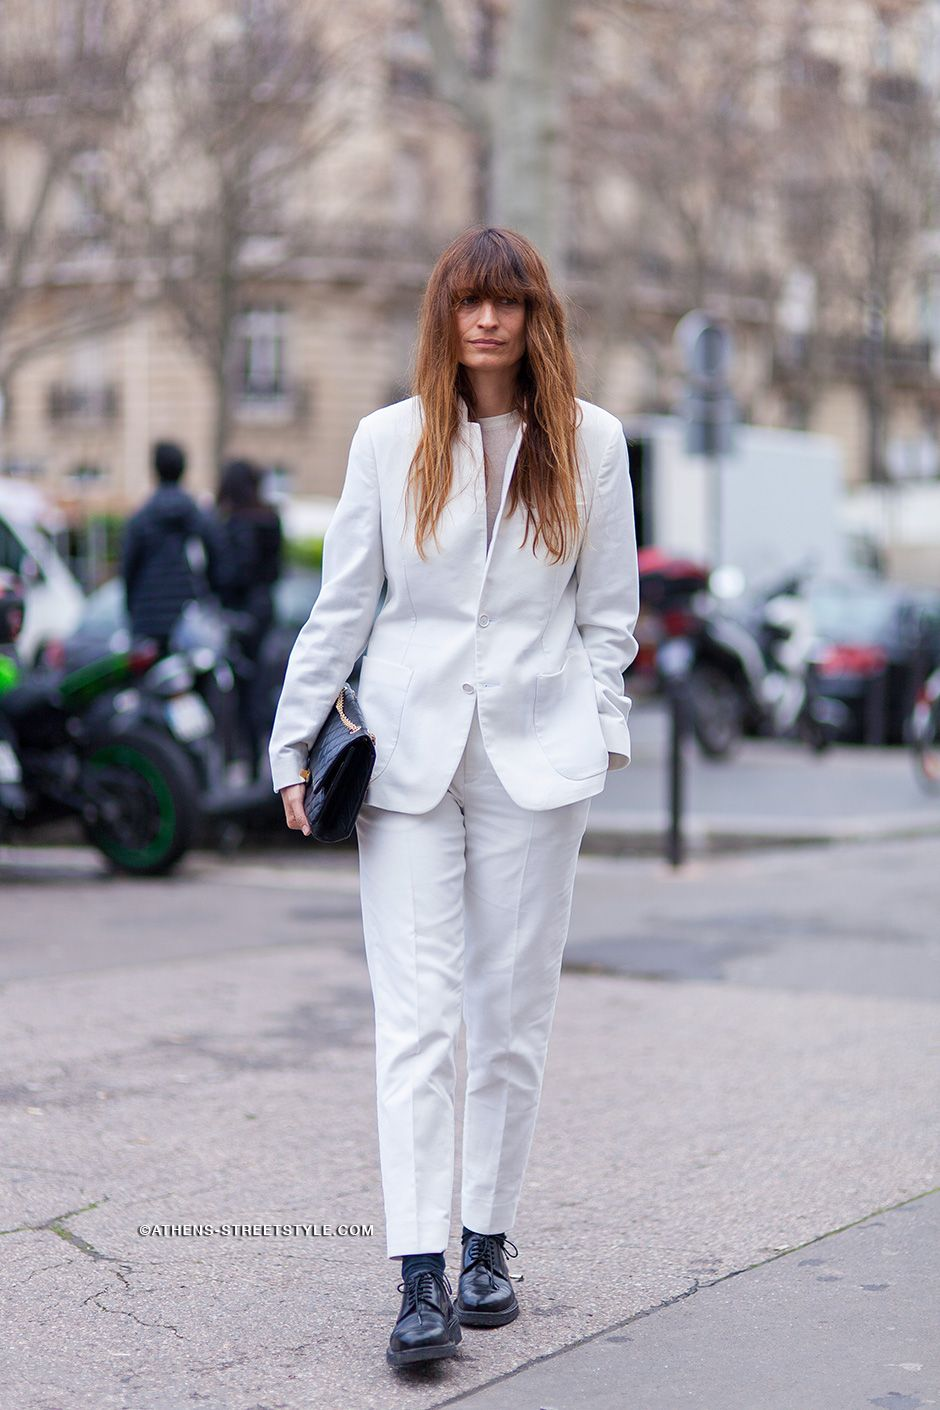 well suited in white. #CarolineDeMaigret in Paris.